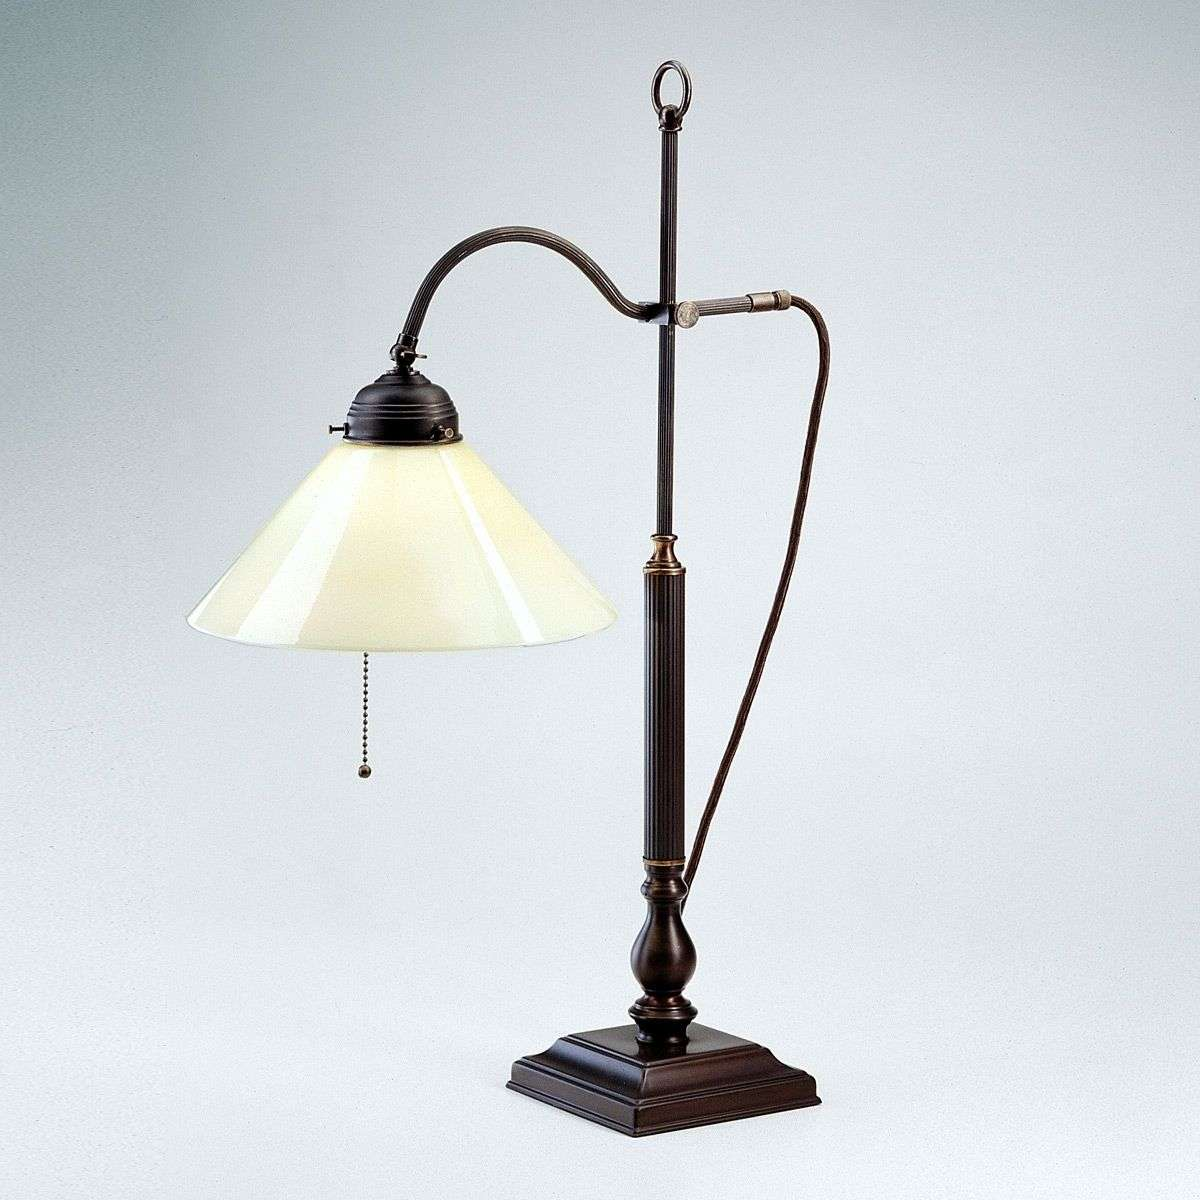 Peter high quality table lamp lights peter high quality table lamp 1542056 31 aloadofball Choice Image